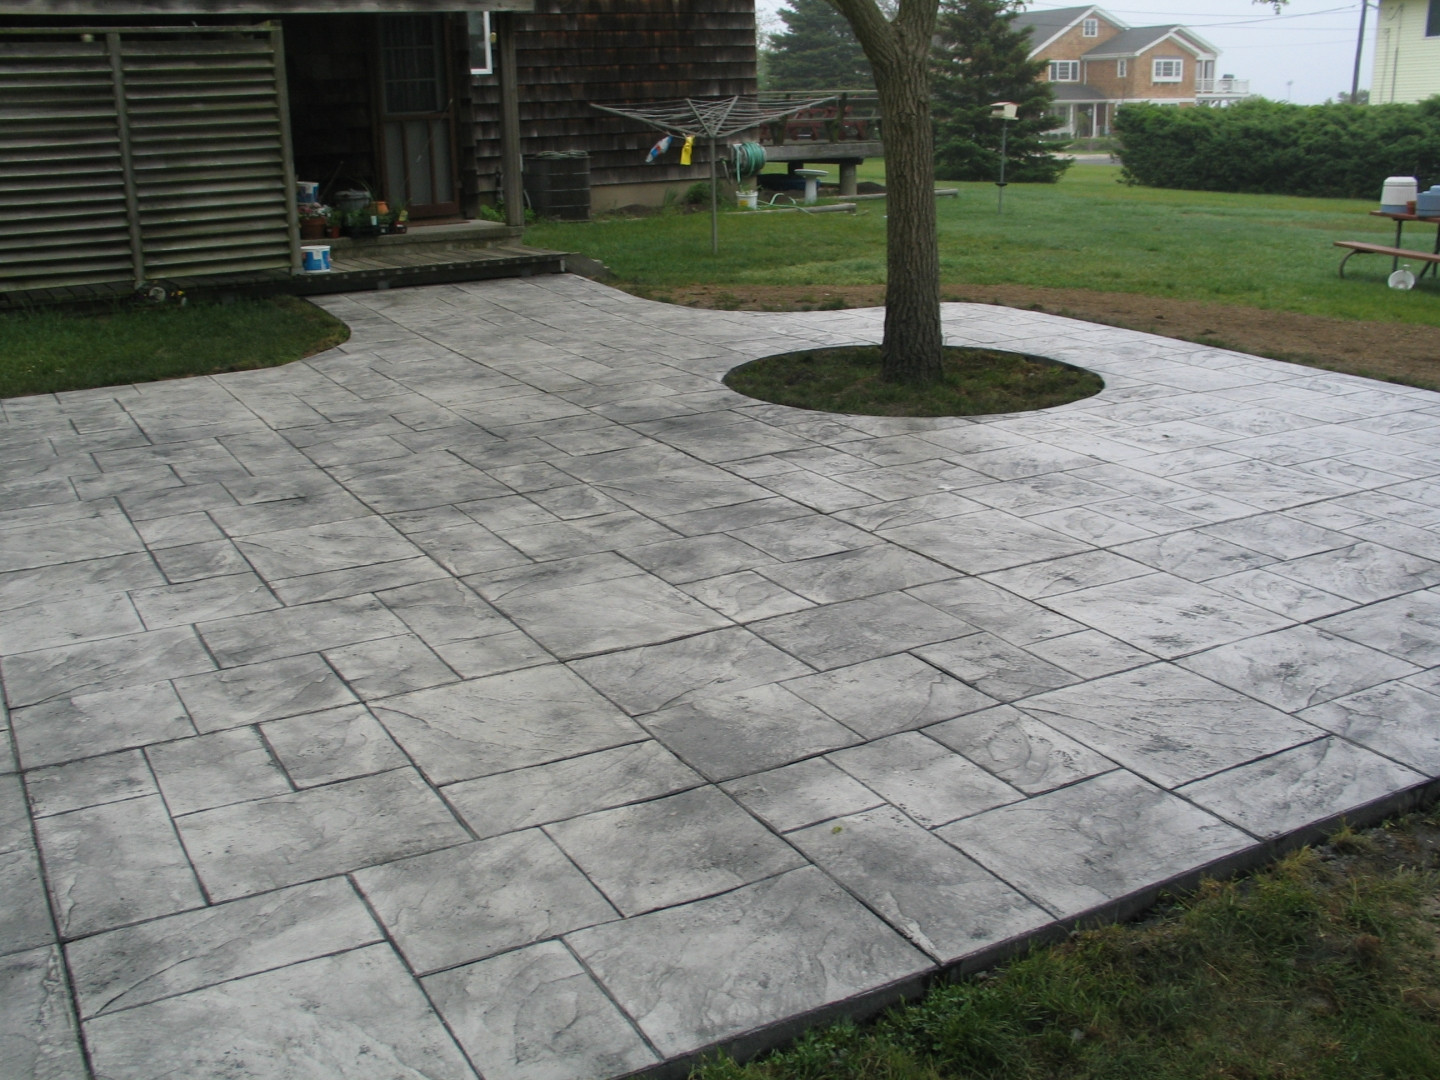 Best ideas about Concrete Patio Ideas . Save or Pin Patios Now.